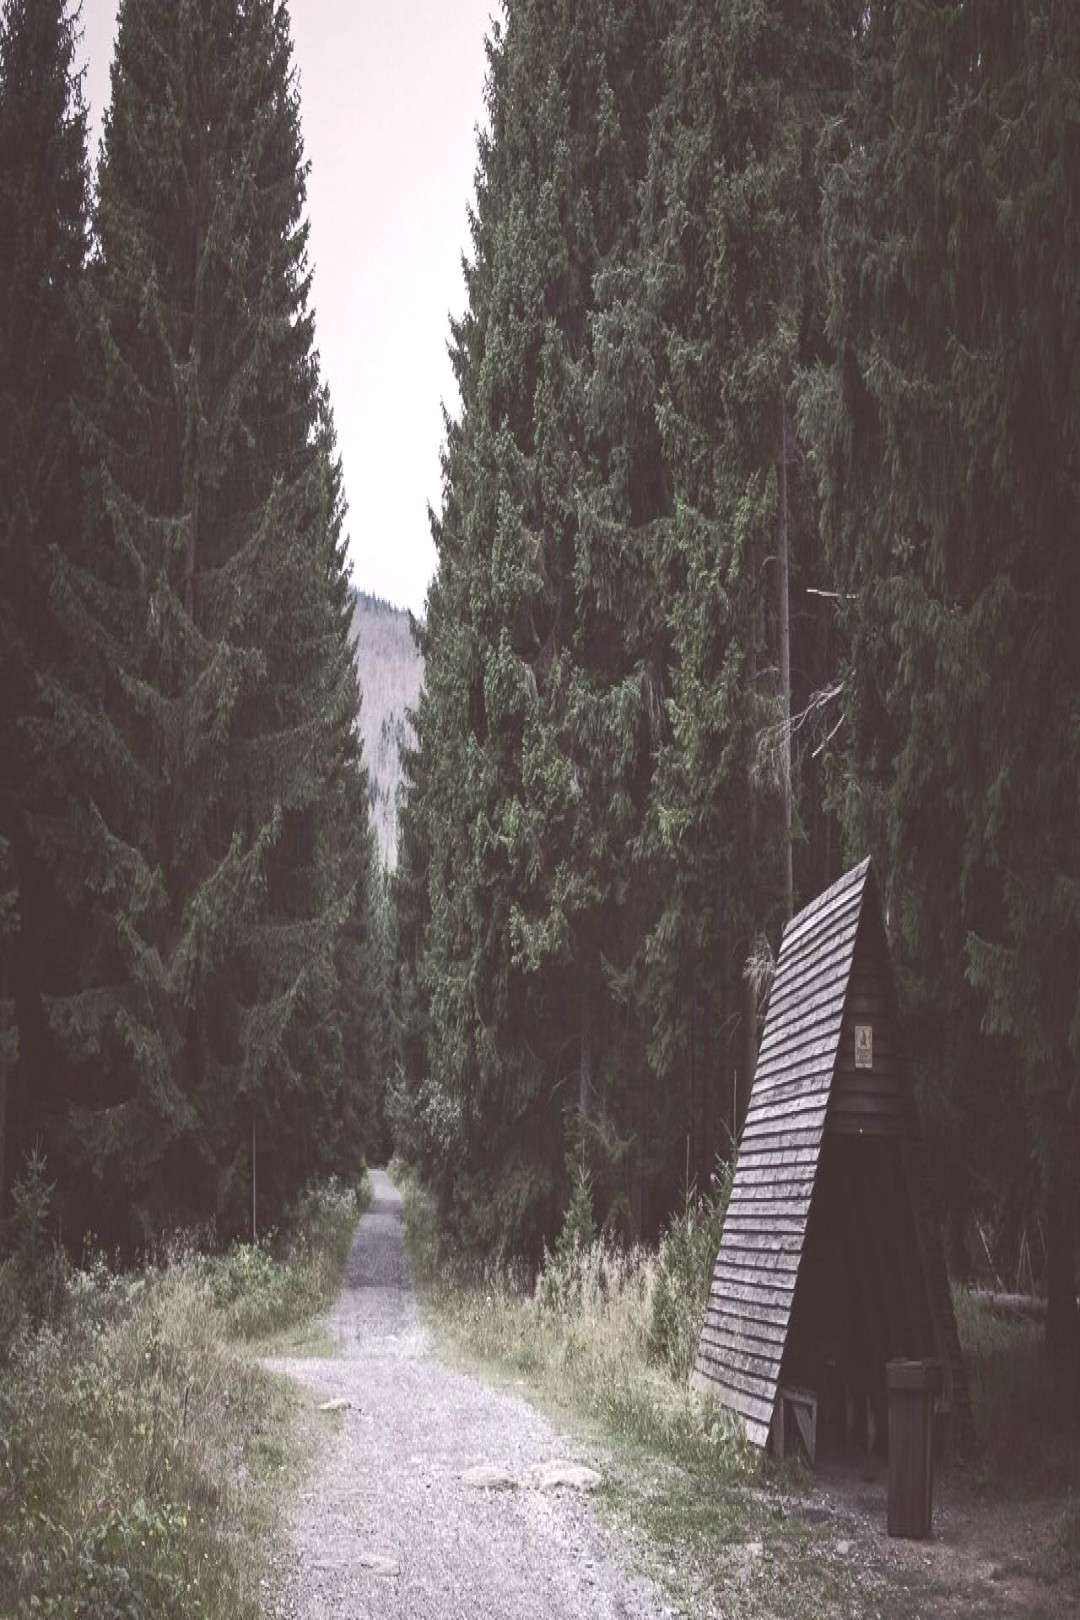 Hiking in the harzmountains, with spruces higher than houses. -